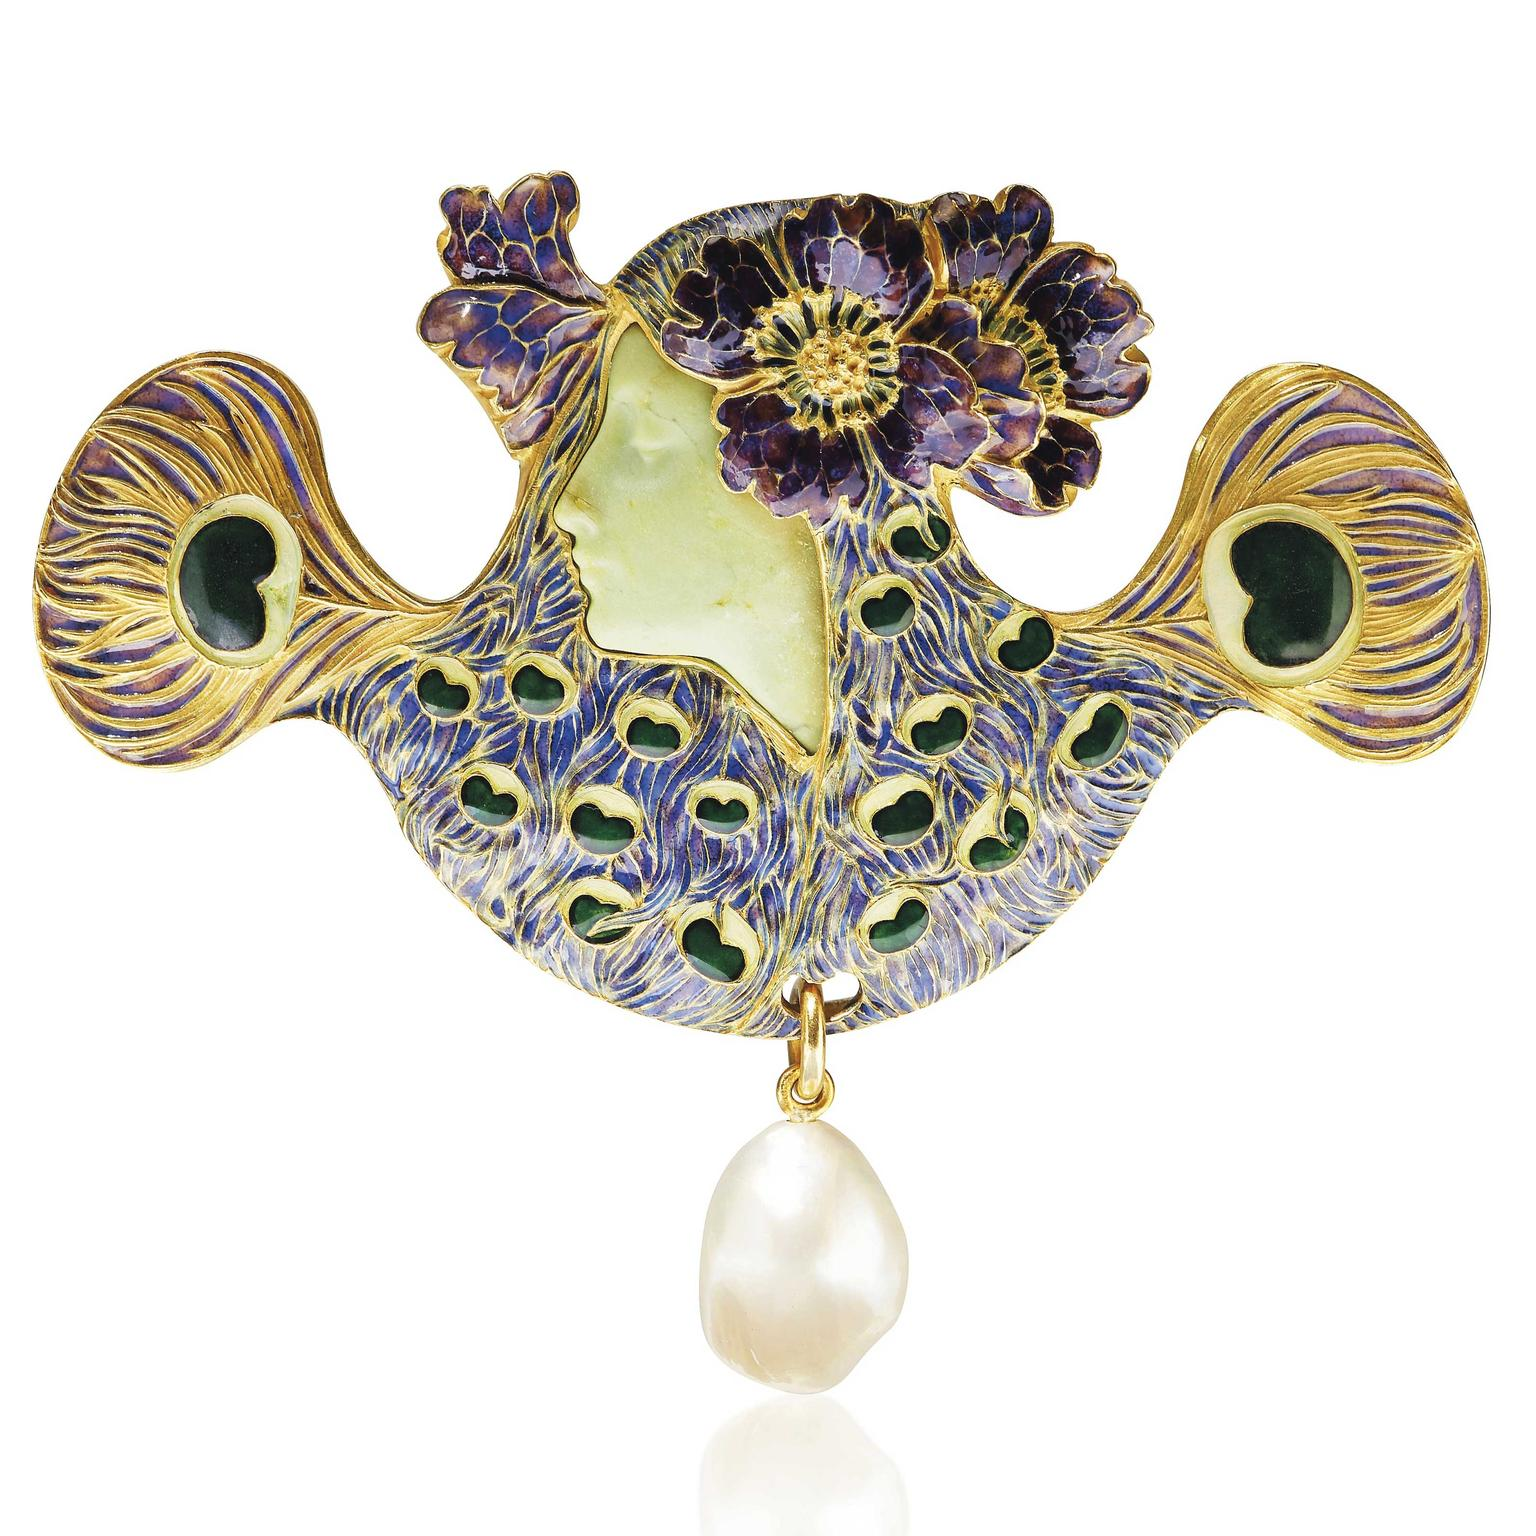 René Lalique Art Nouveau Peacock woman brooch circa 1898